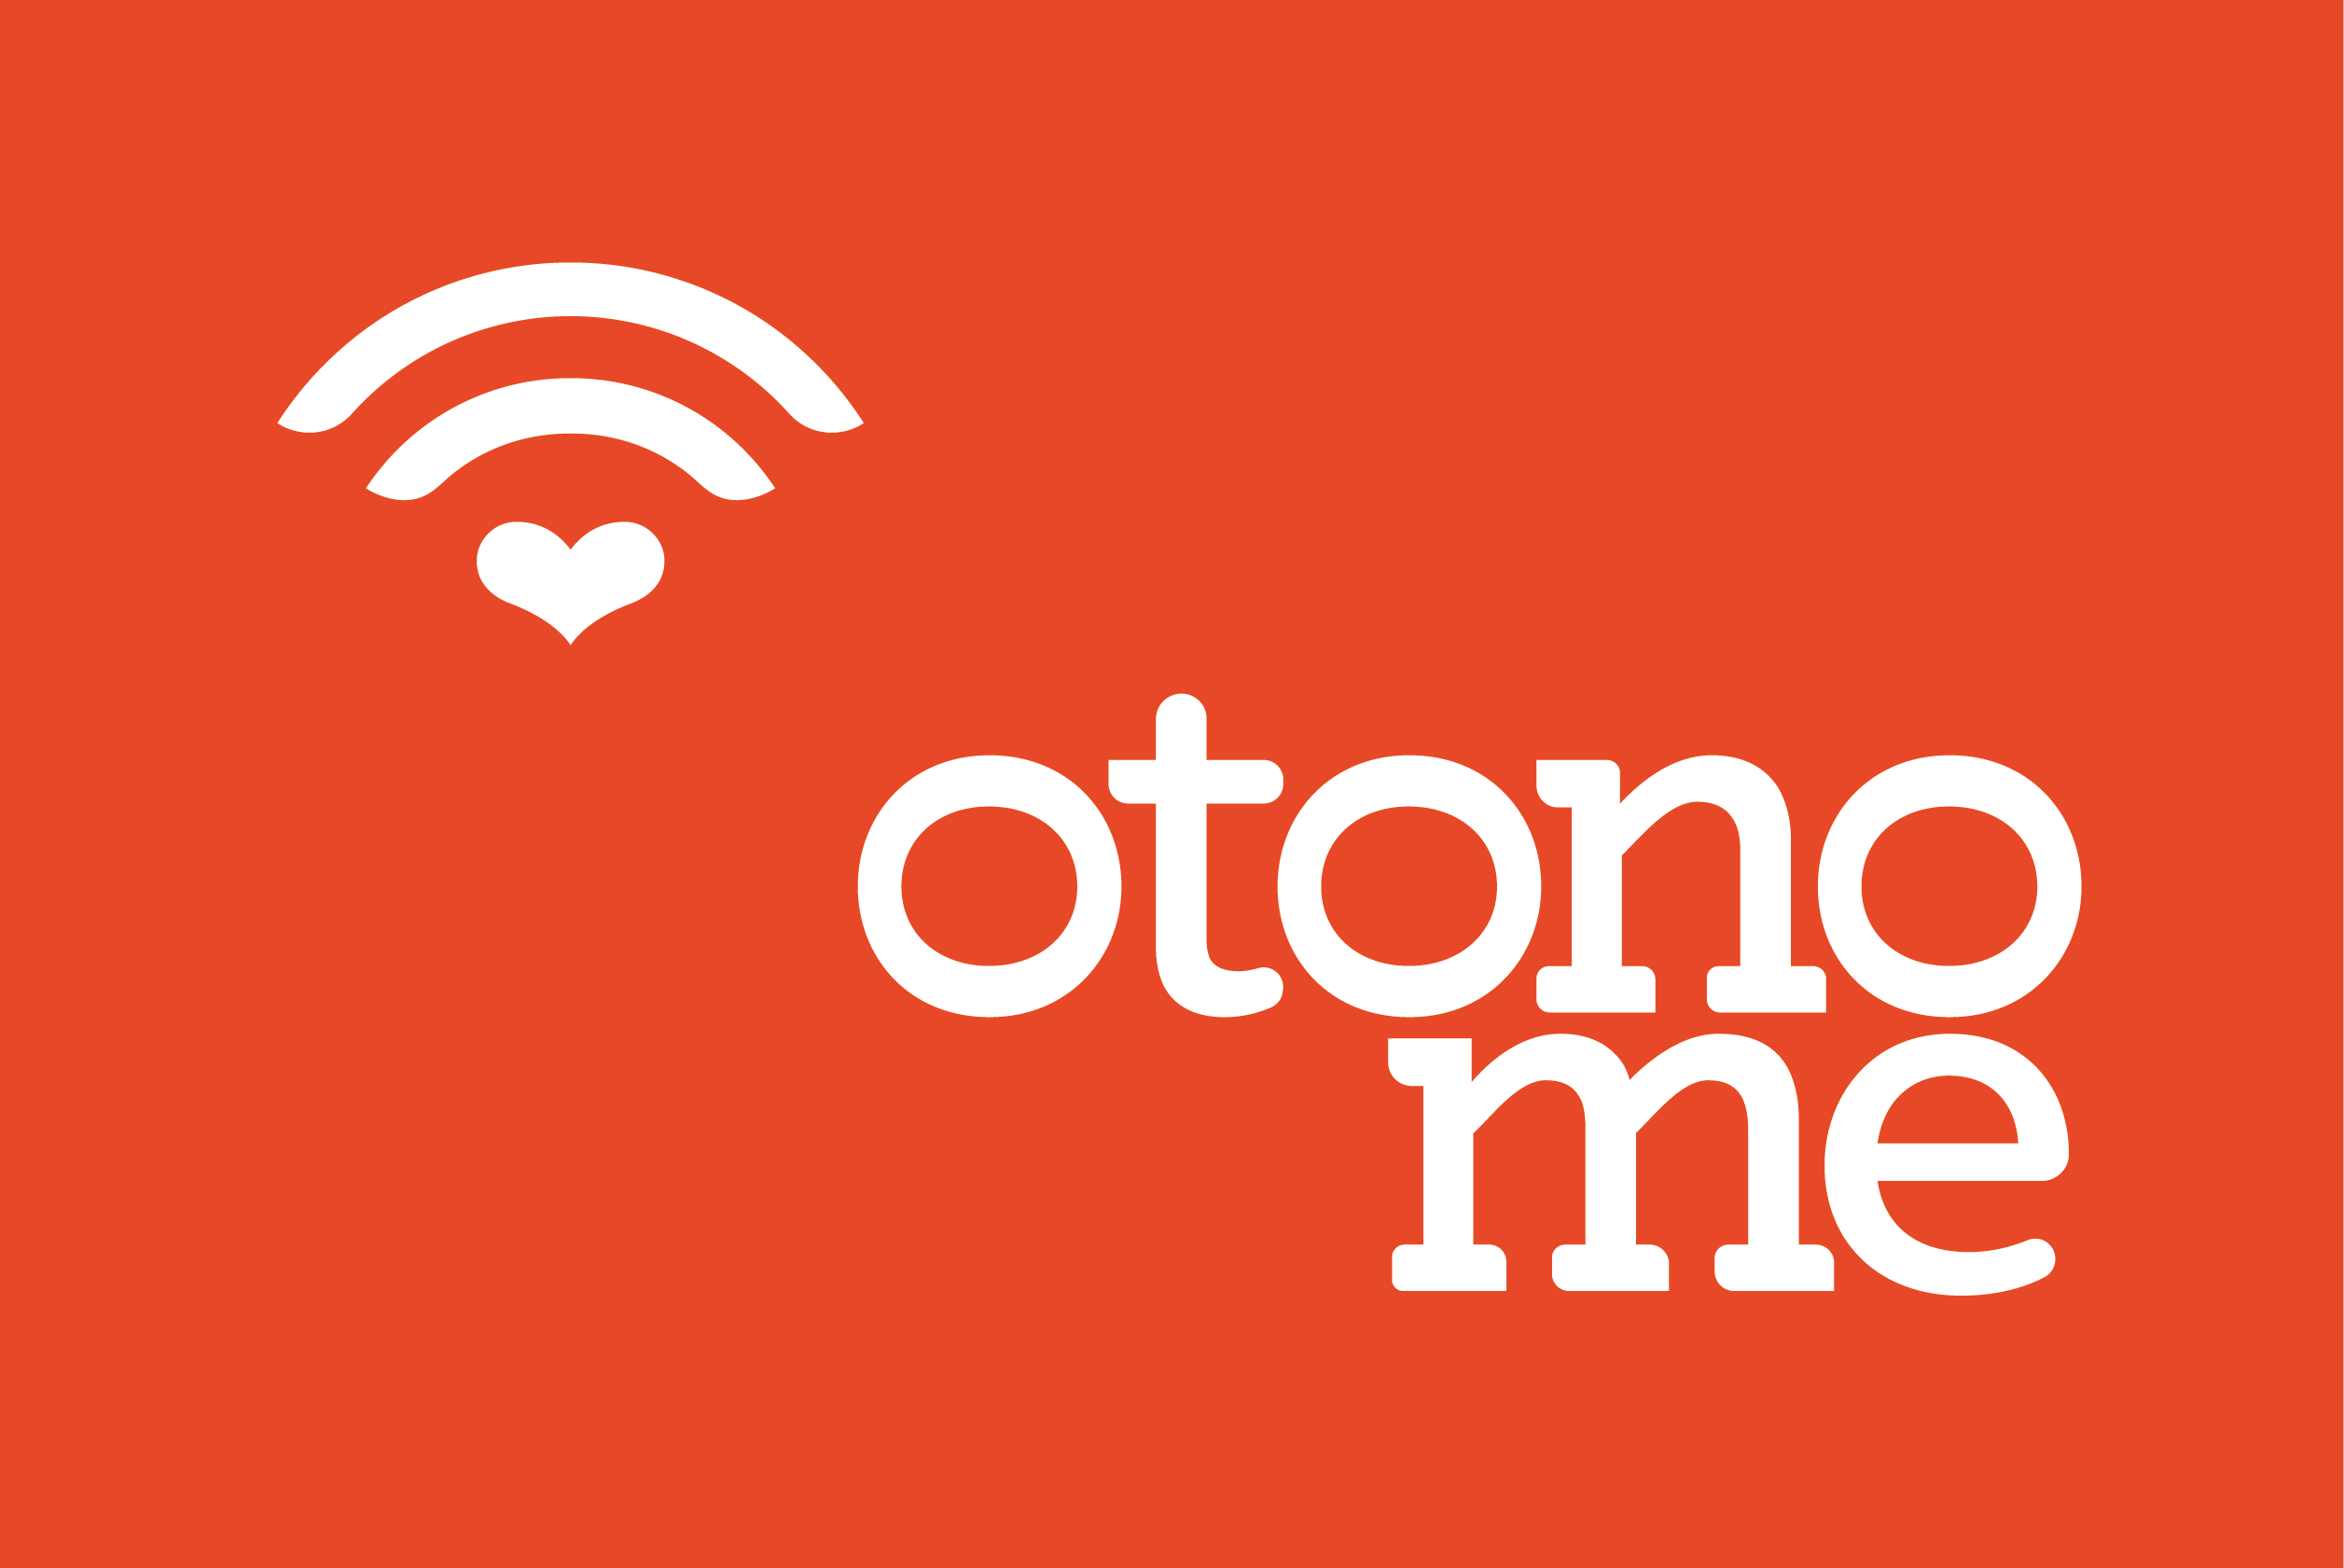 otono-me_full_Versions-02